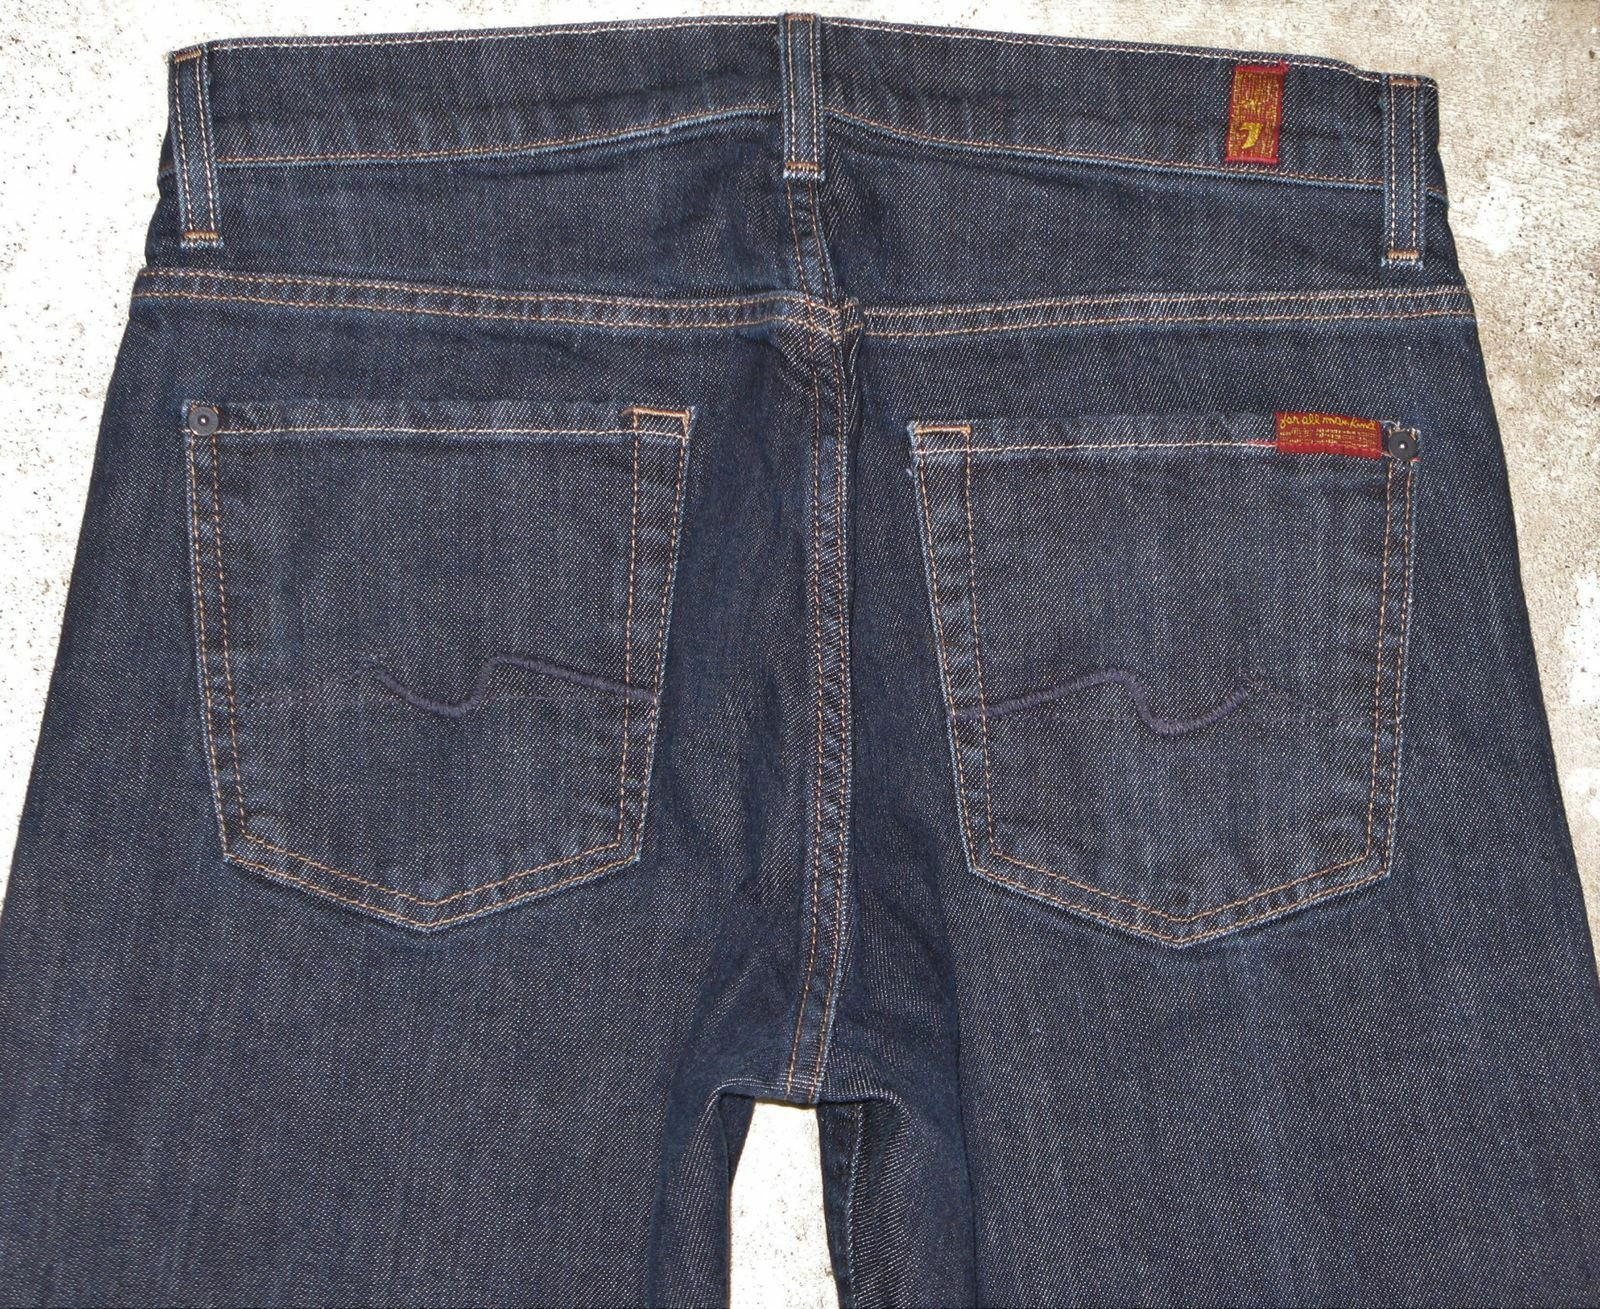 7 For all Mankind Mens Relaxed Jeans Sz 30 X 30 Dark bluee w Stretch